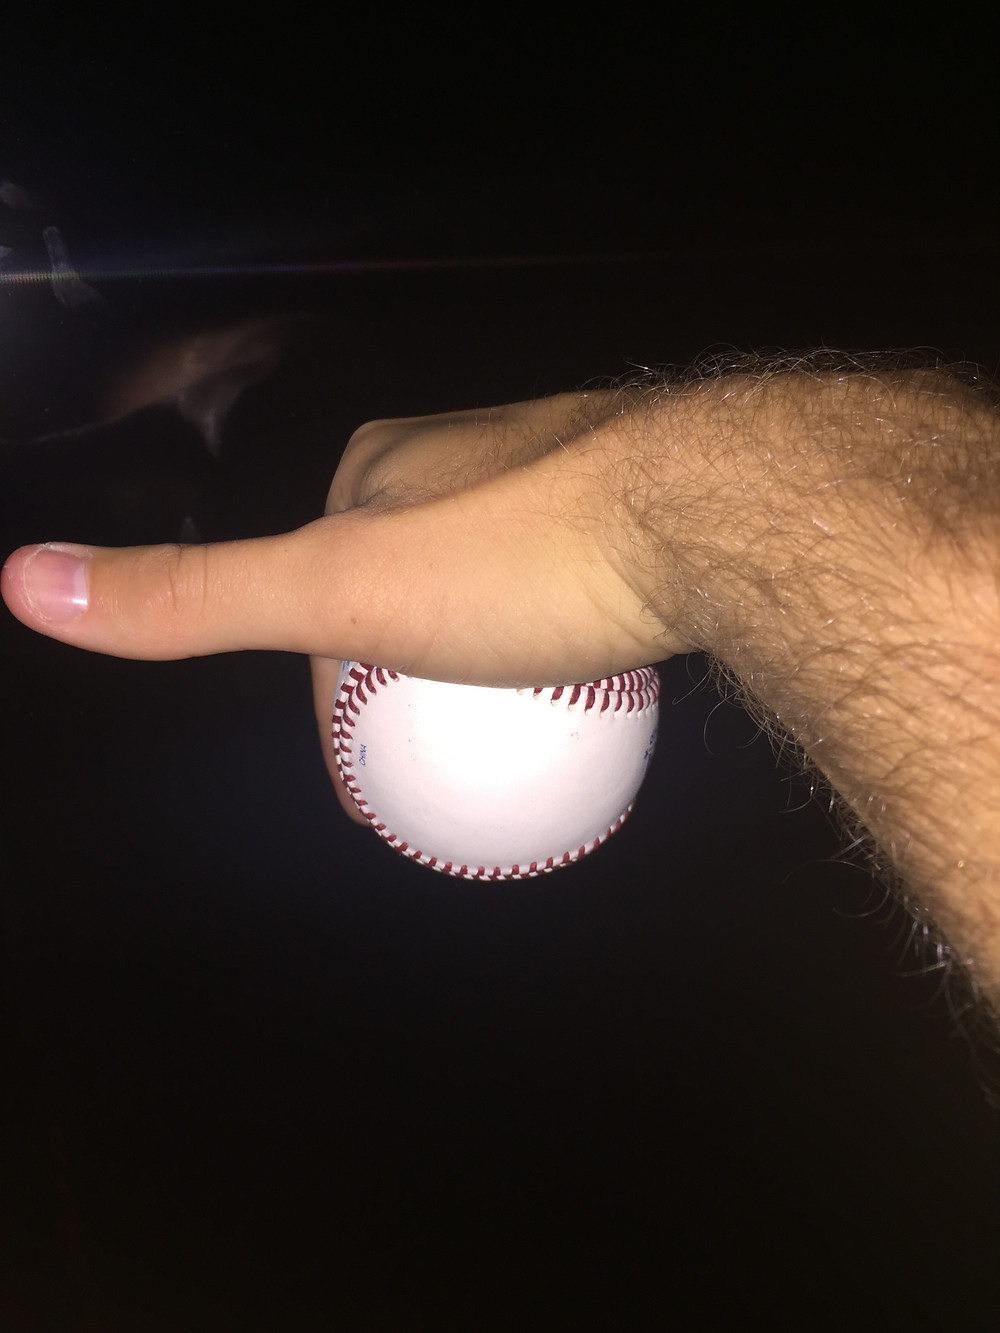 A 12-6 Curveball spins downward. The fingers are pointing doward. Spin axis is in direction the thumb.